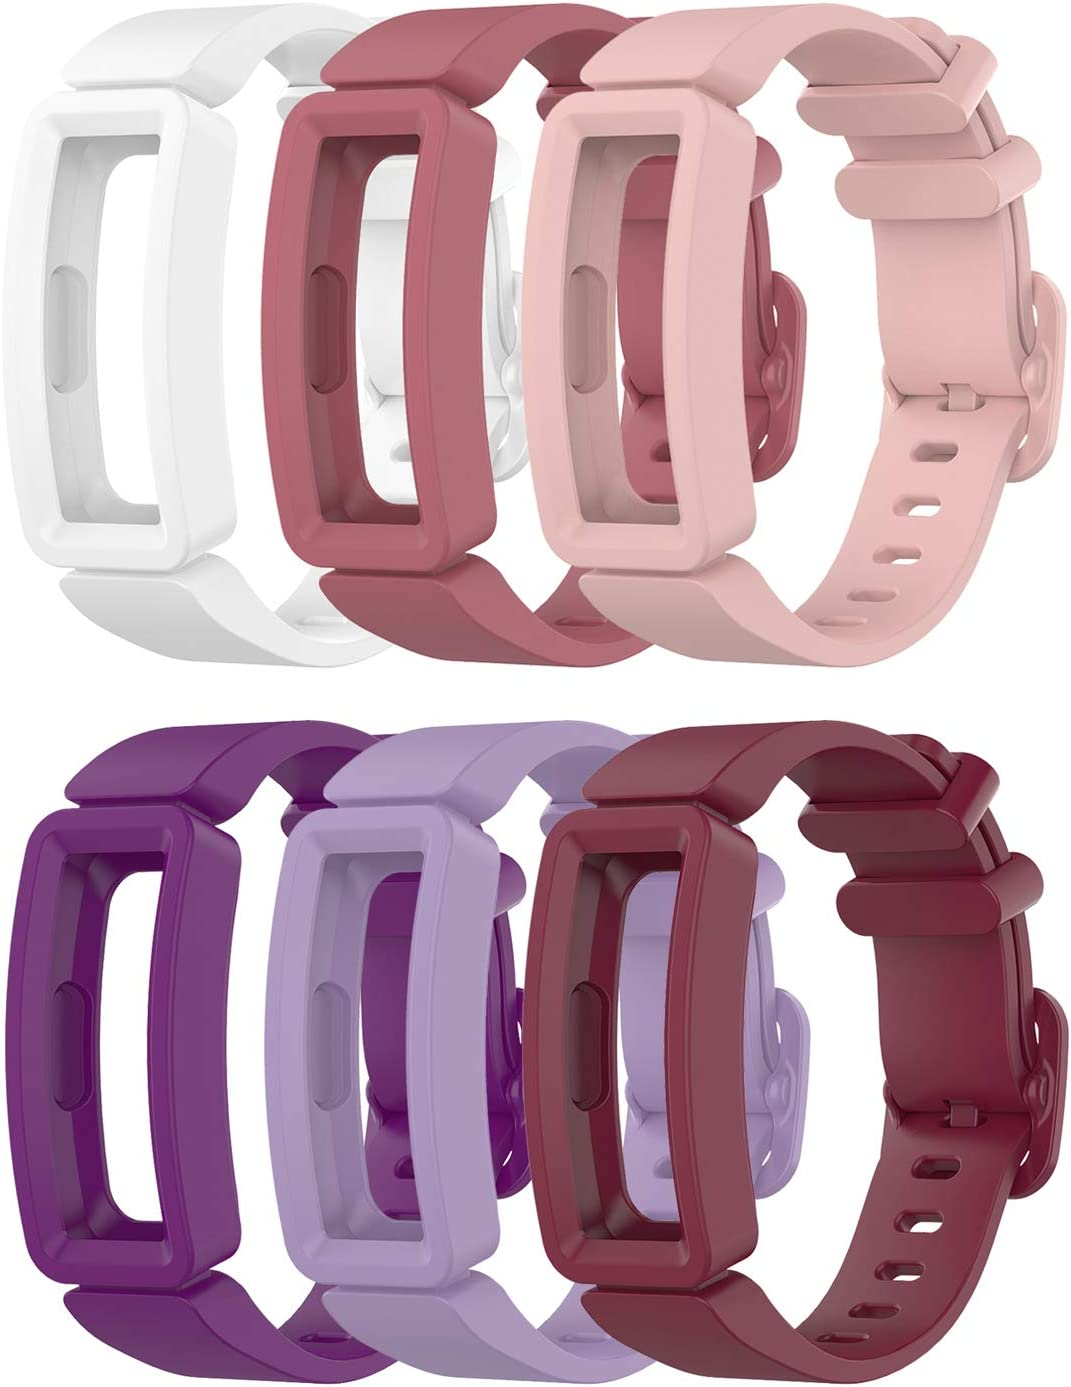 EEweca 6-Pack Bands Compatible with Fitbit Ace 2 Replacement Strap for Kids (White, Purple, Lilac, Sangria, Rose Pink, Soft Pink)